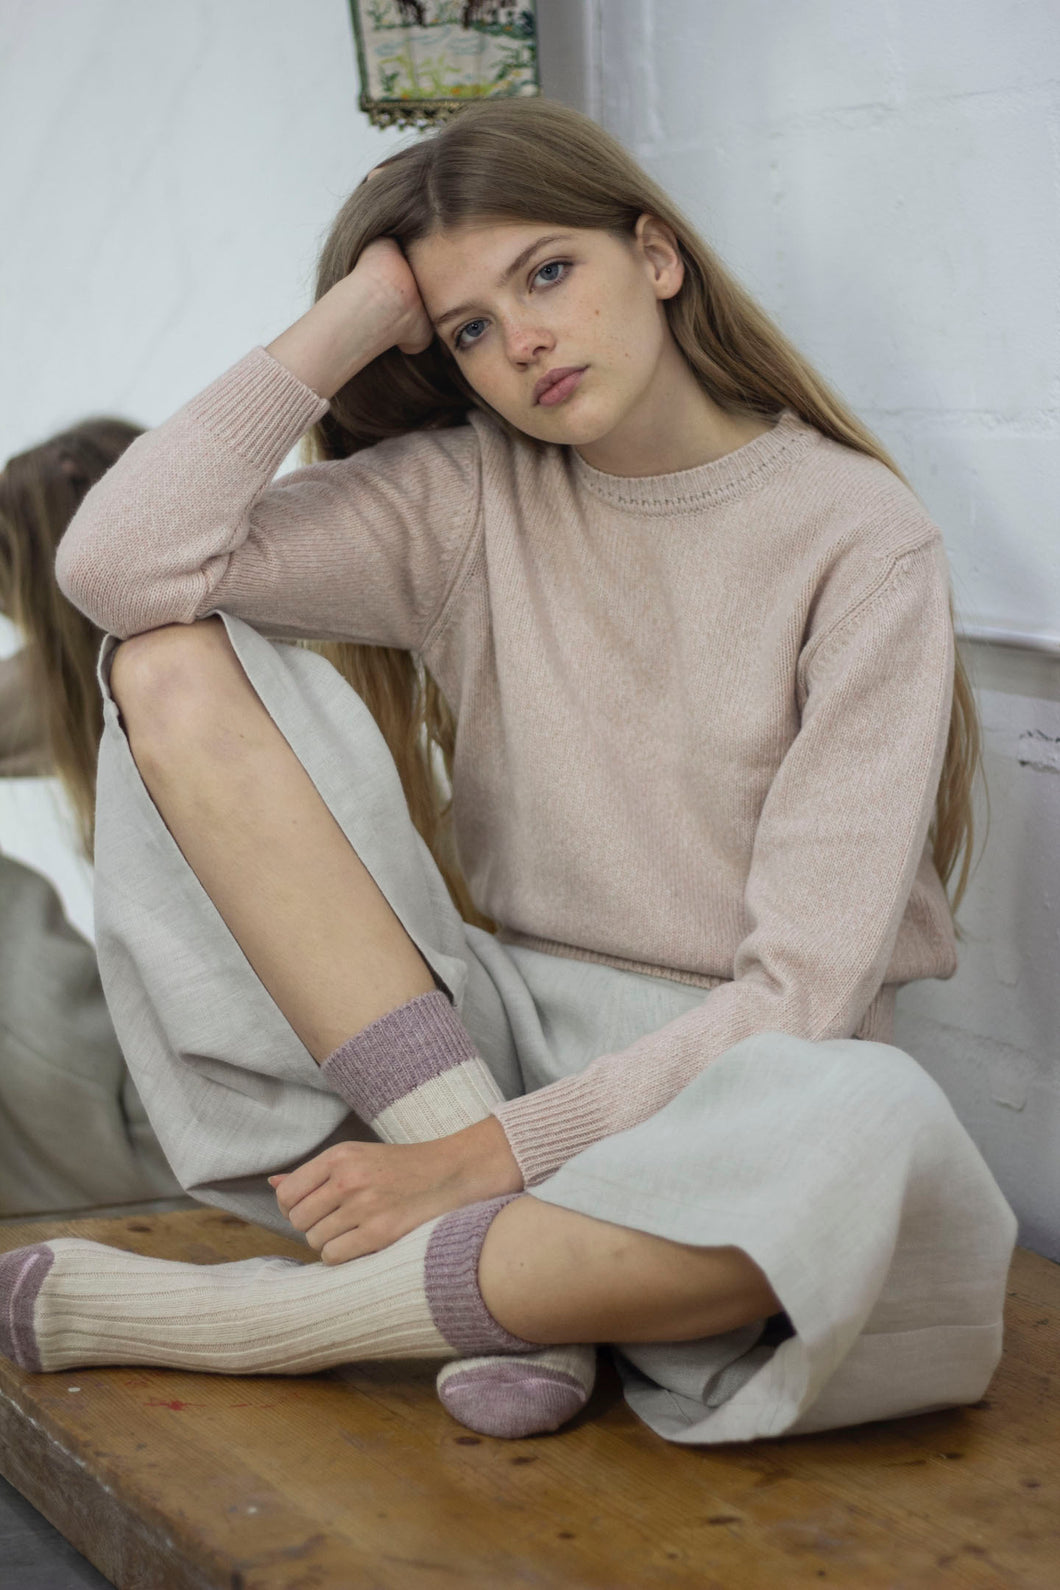 Sandy Pink Recycled Cashmere Sweater - crew neck, pink with brown flecks